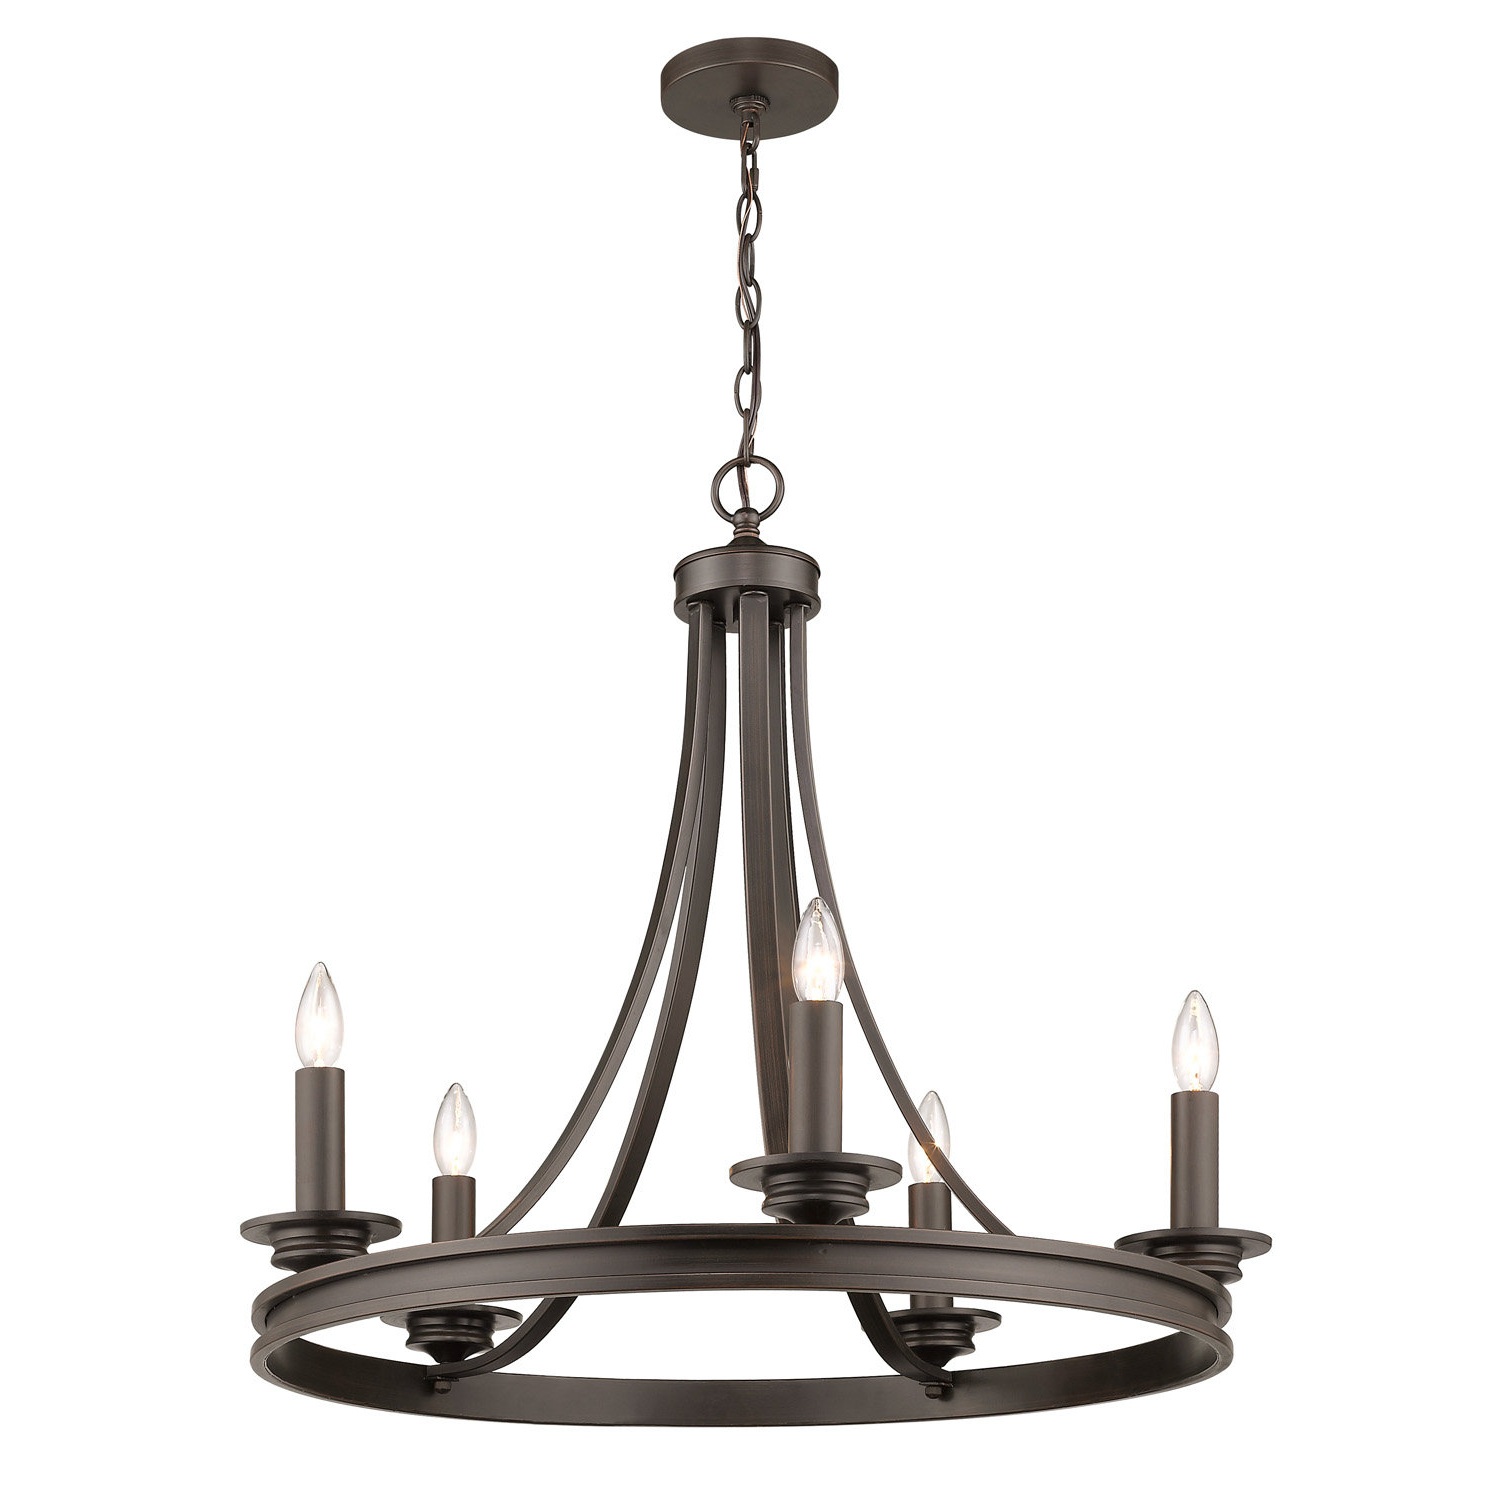 Pavon 5 Light Wagon Wheel Chandelier Intended For Preferred Janette 5 Light Wagon Wheel Chandeliers (View 8 of 25)